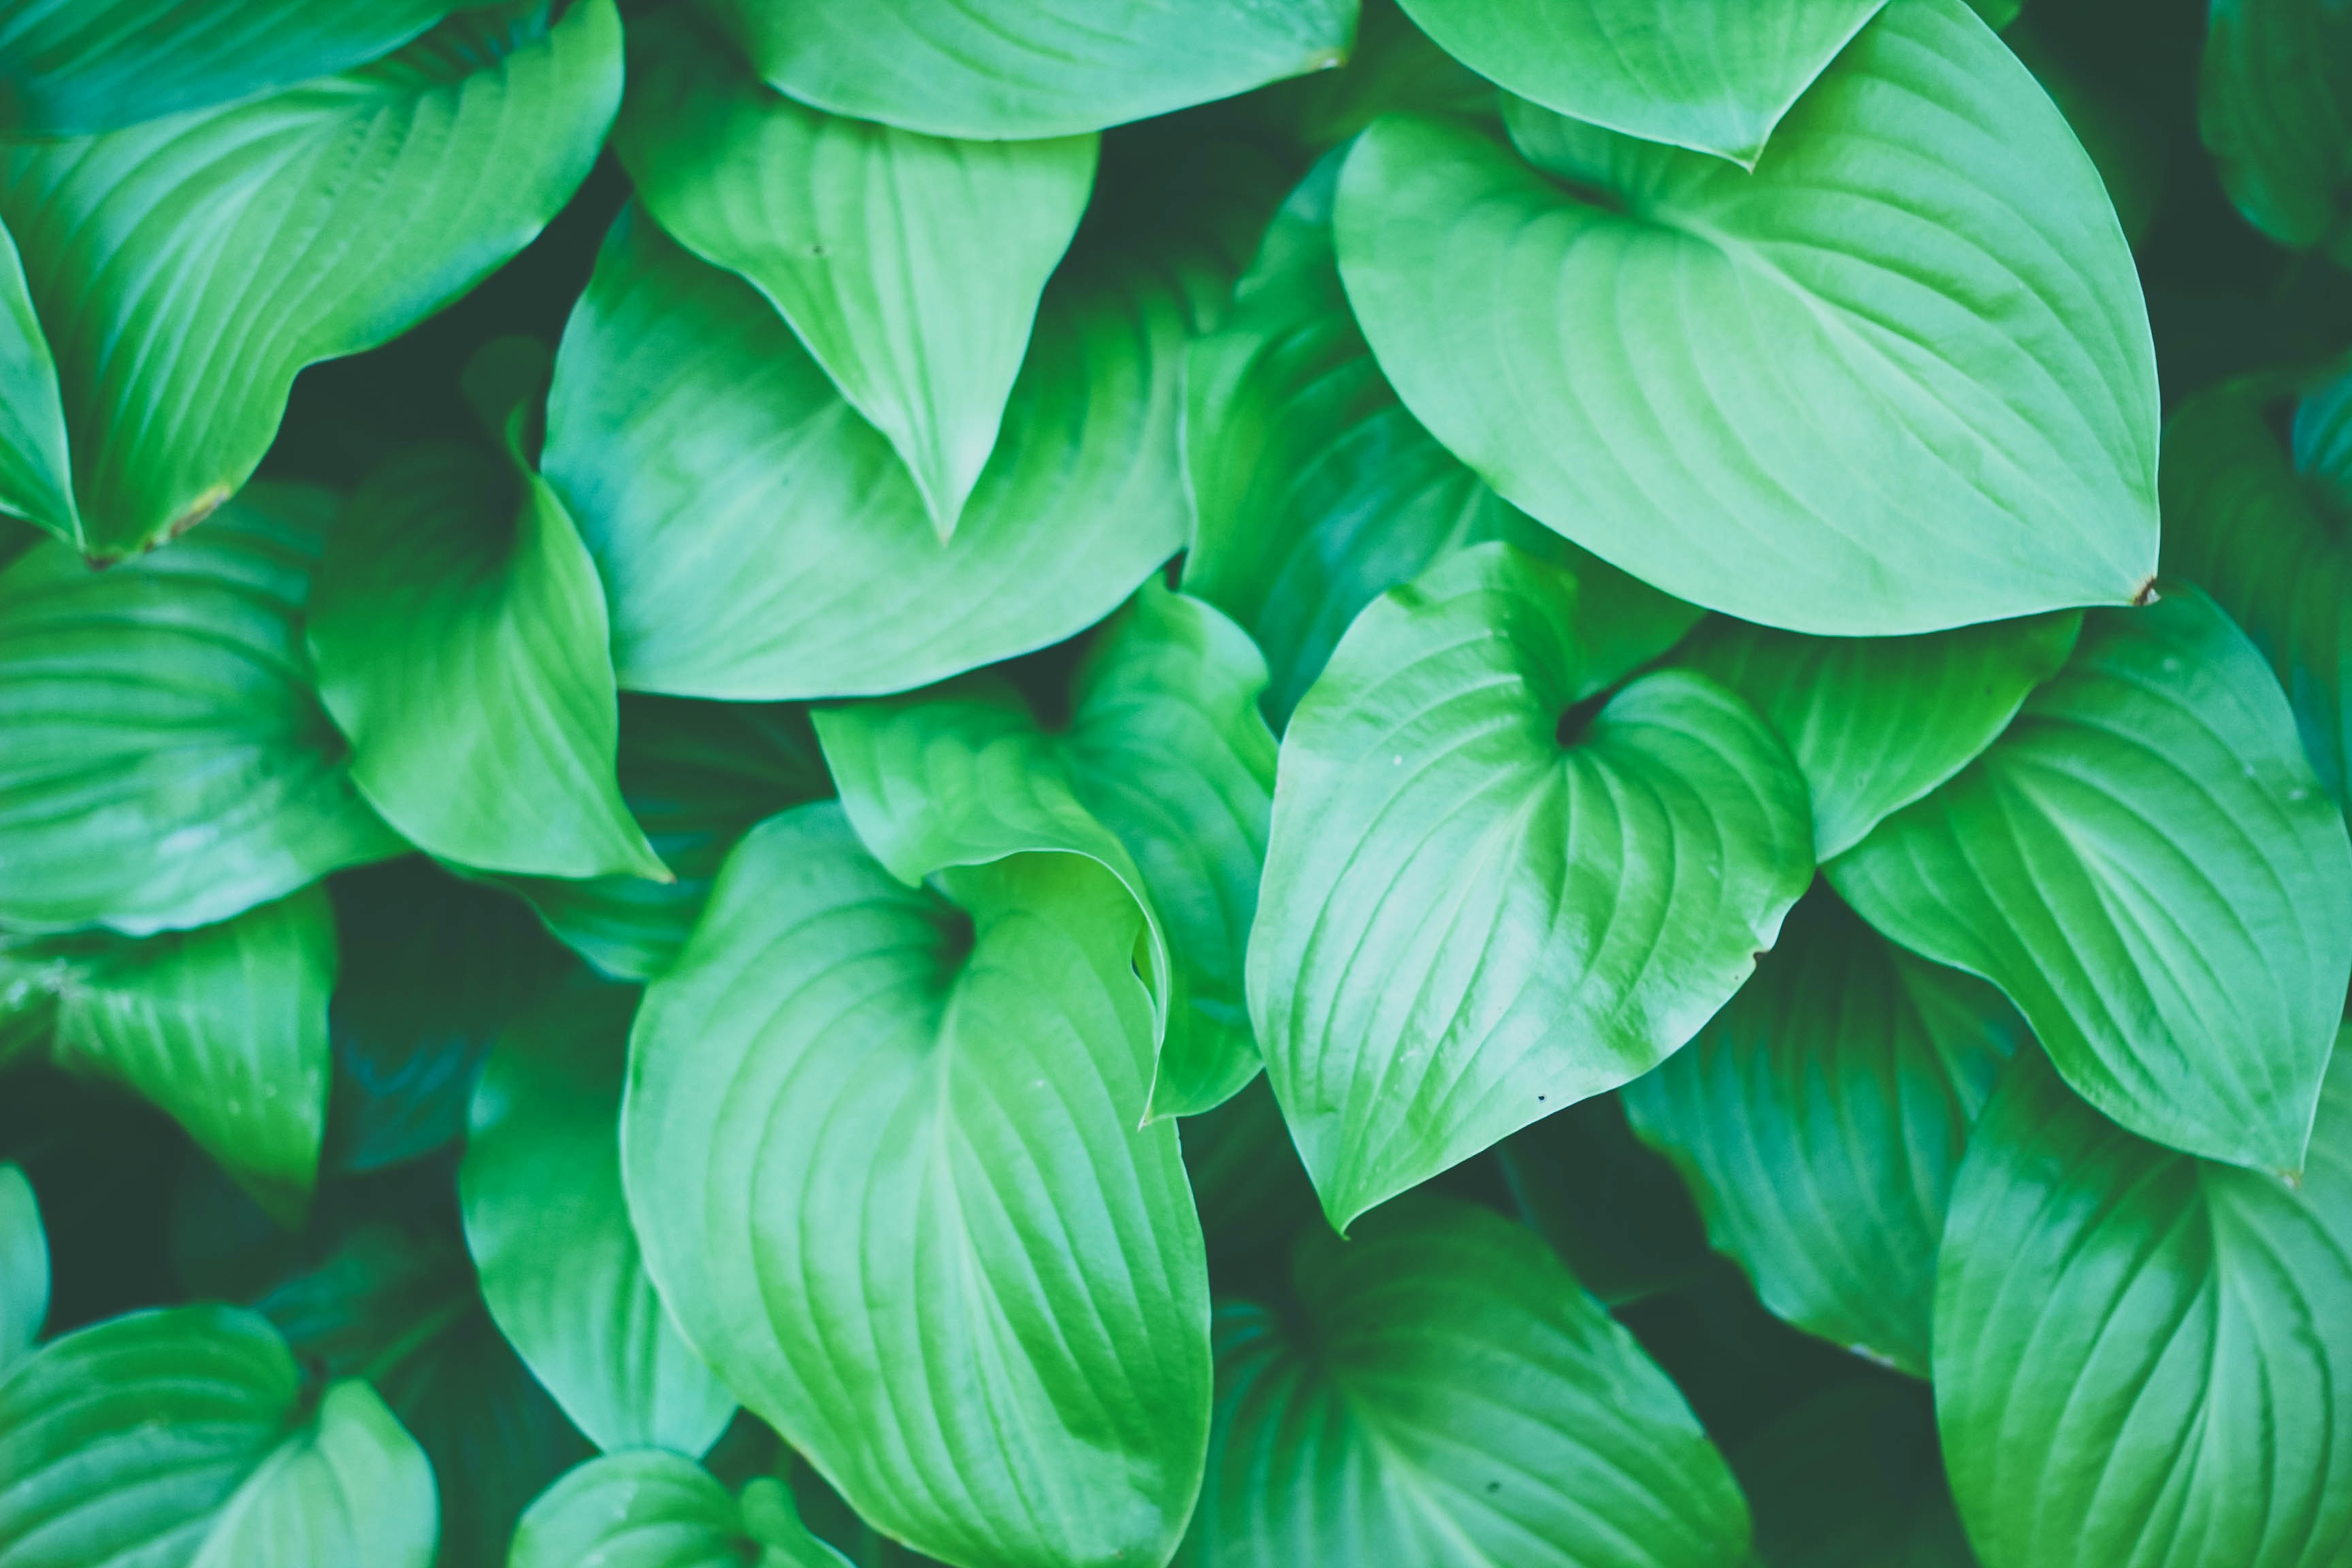 A top view of green heart-shaped leaves with conspicuous veins